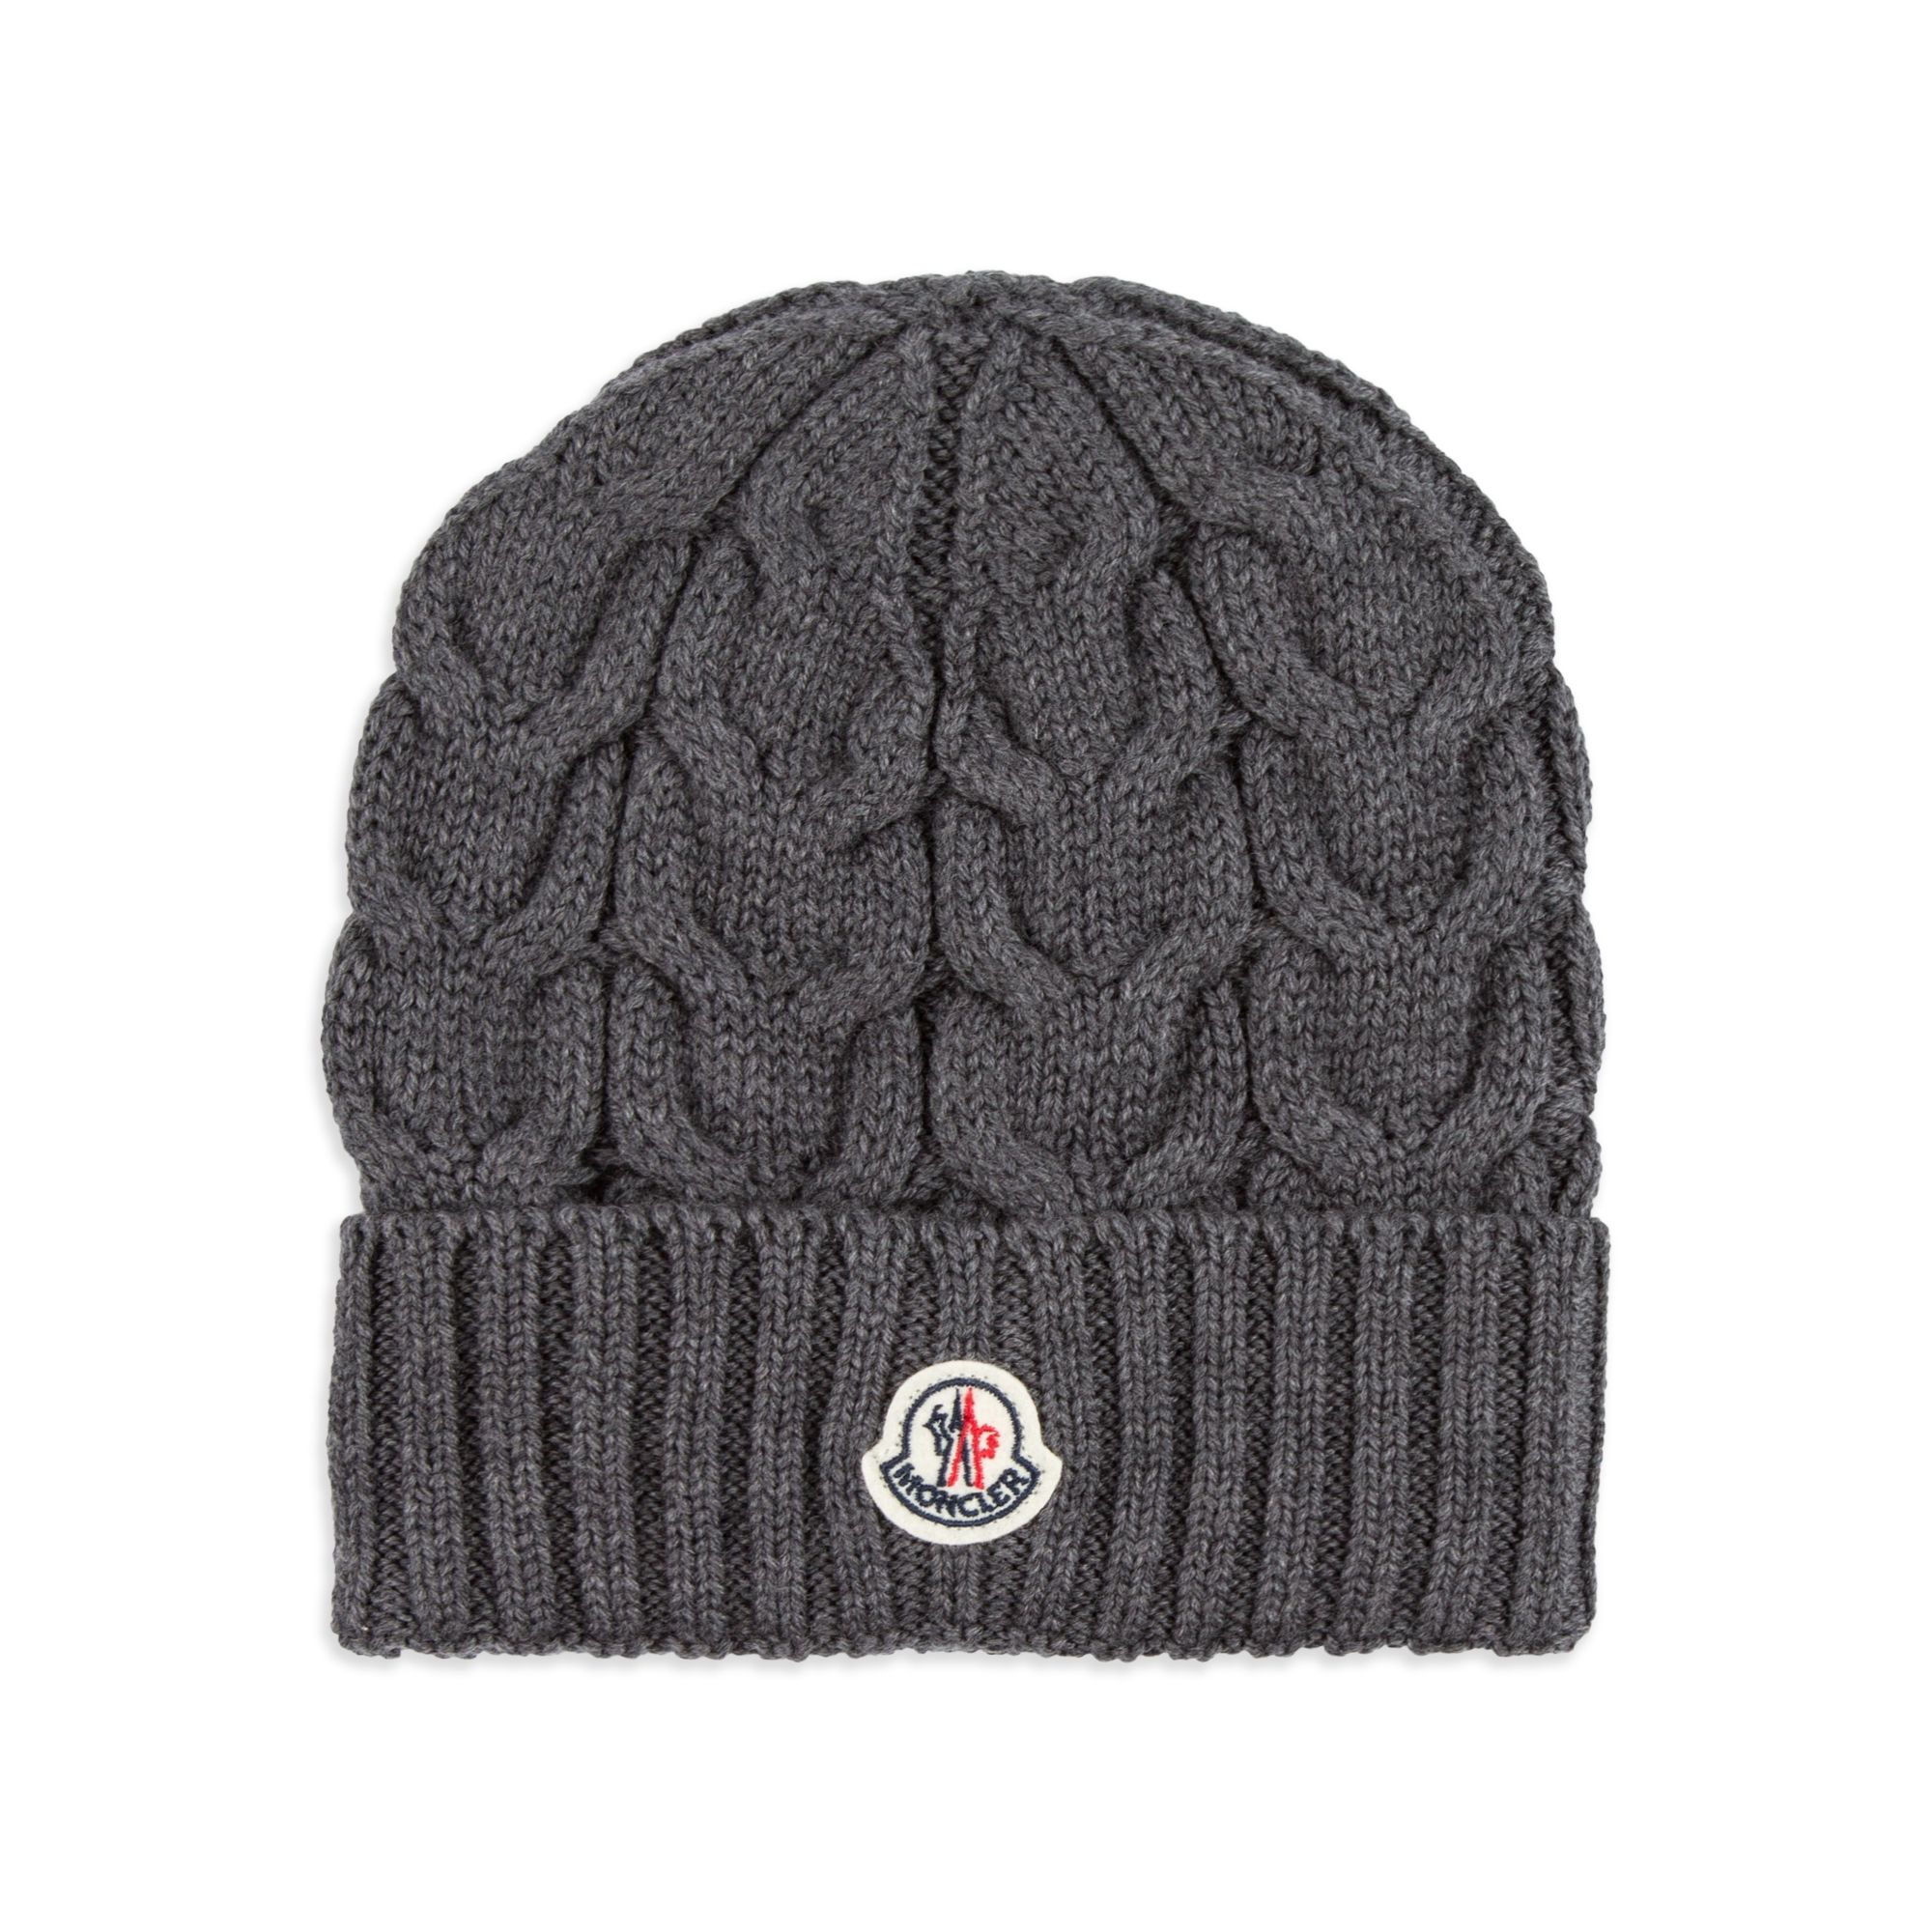 fa6bc8e3a32 MONCLER Boys Wool Cable Knit Hat - Grey Boys beanie hat • Soft virgin wool  • Turn up brim • Cable knit design • Signature logo motif • Made in Italy  ...